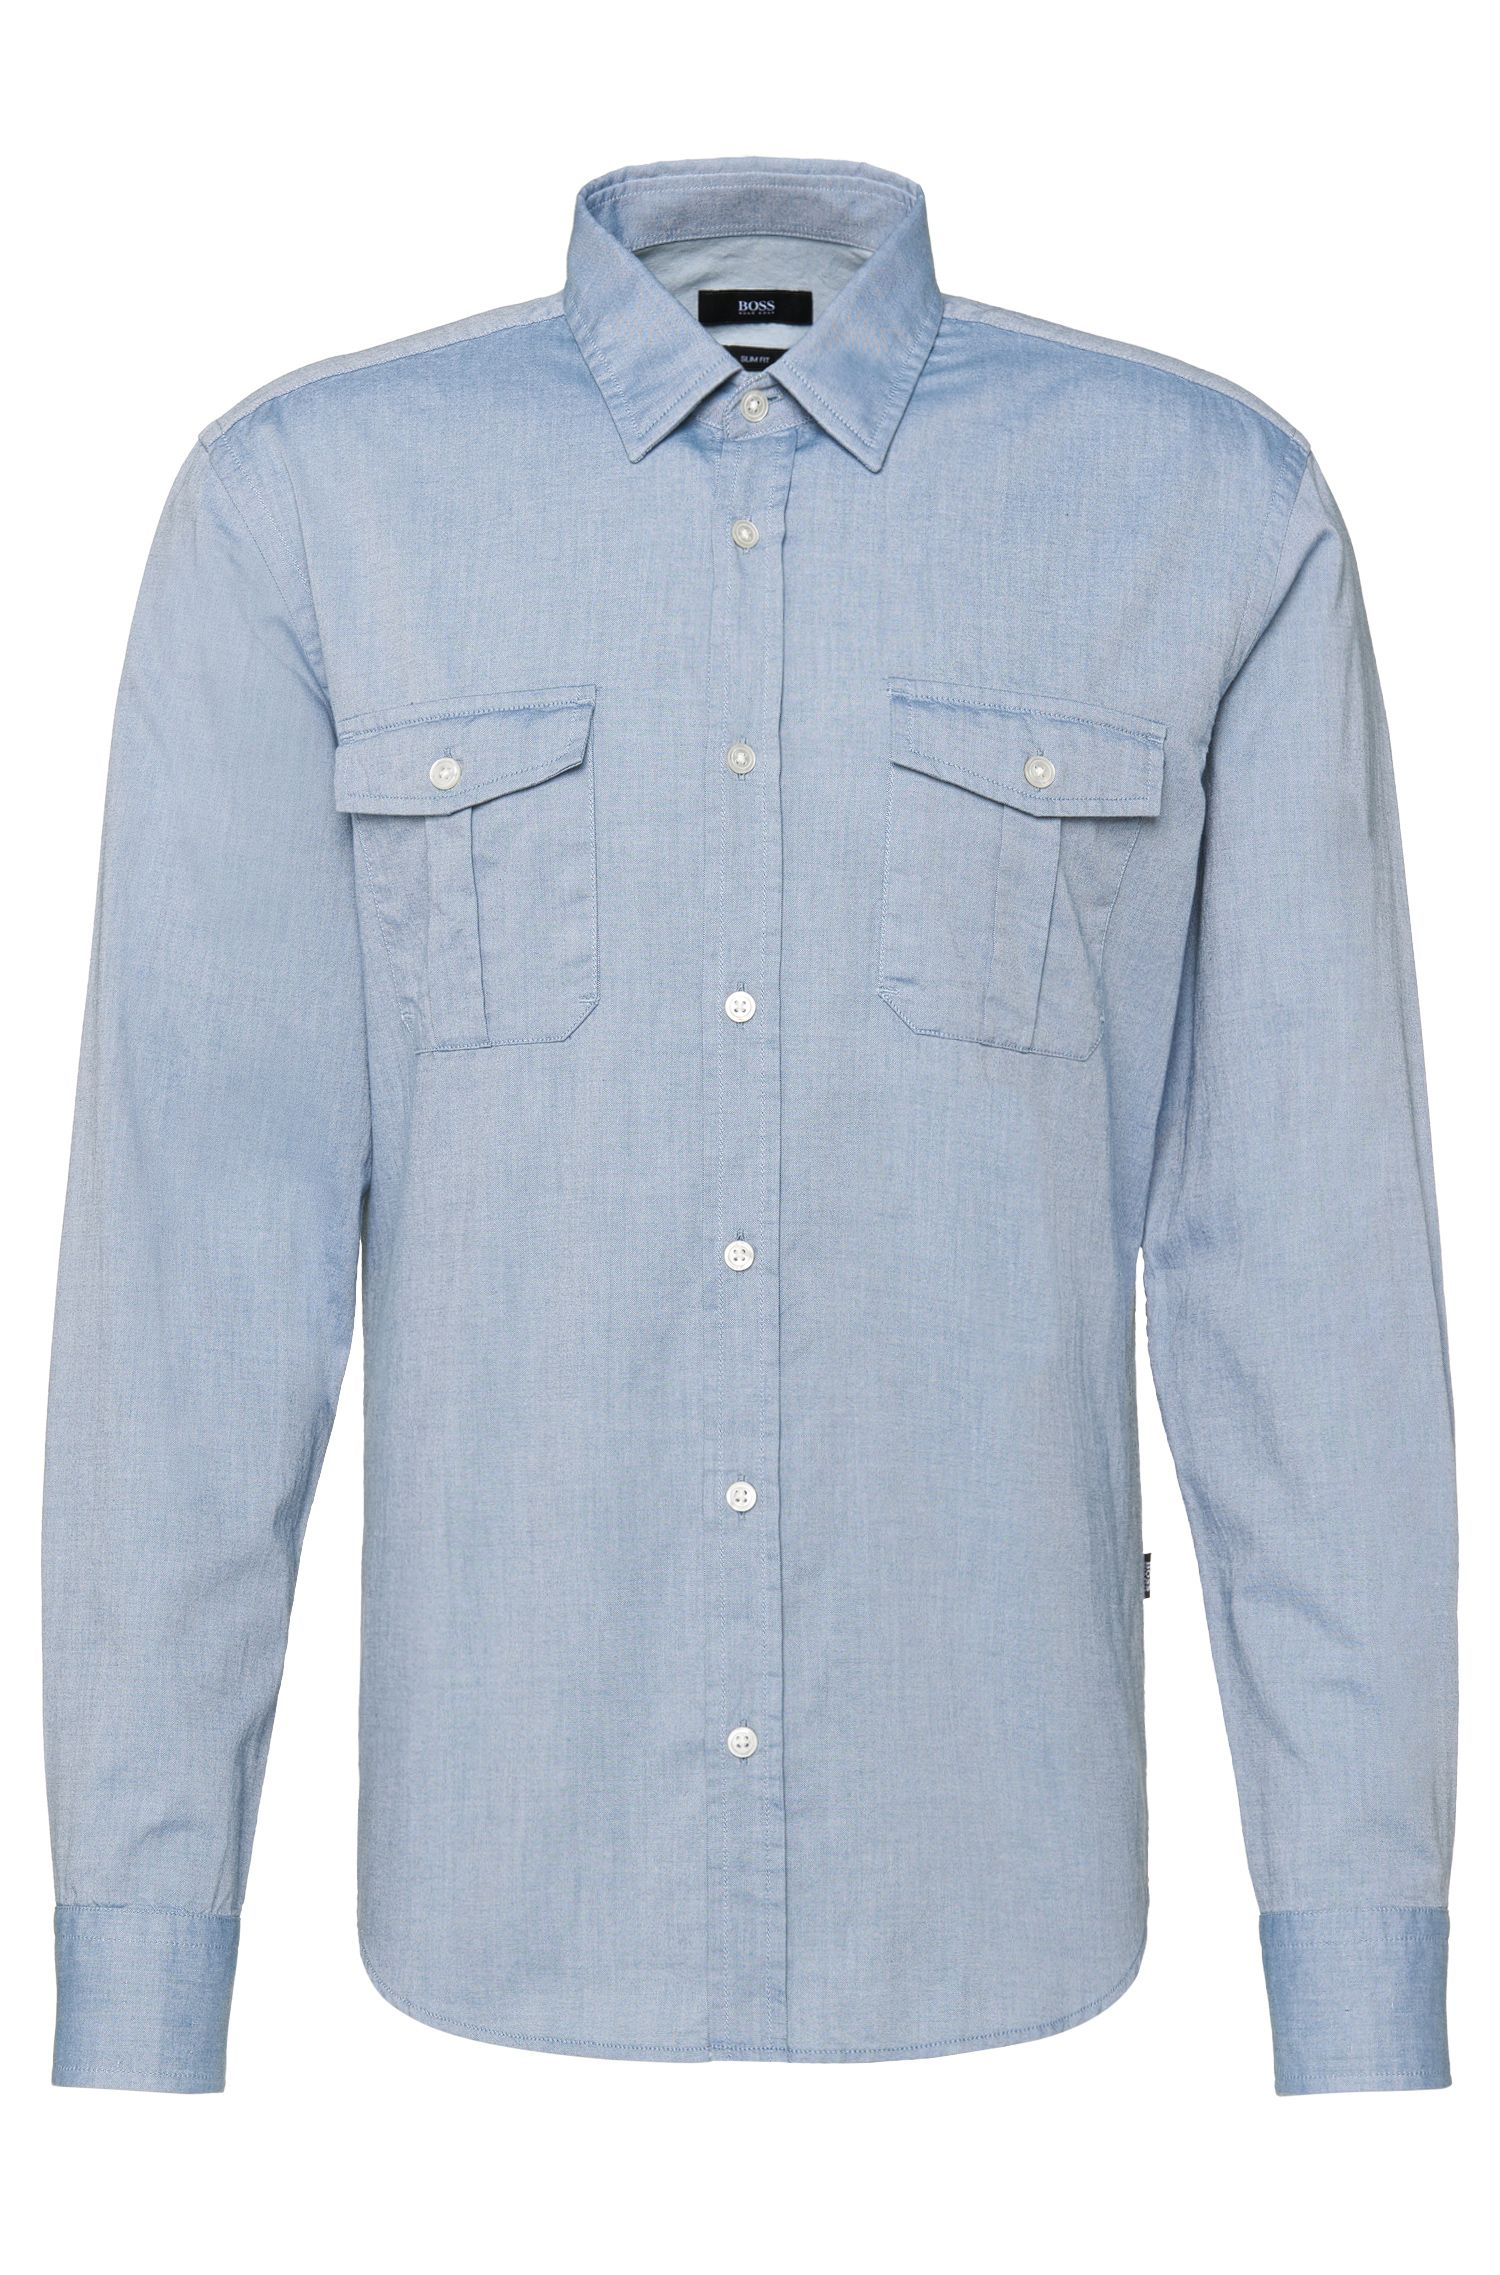 'Ramsey' | Slim Fit, Cotton Button Down Shirt